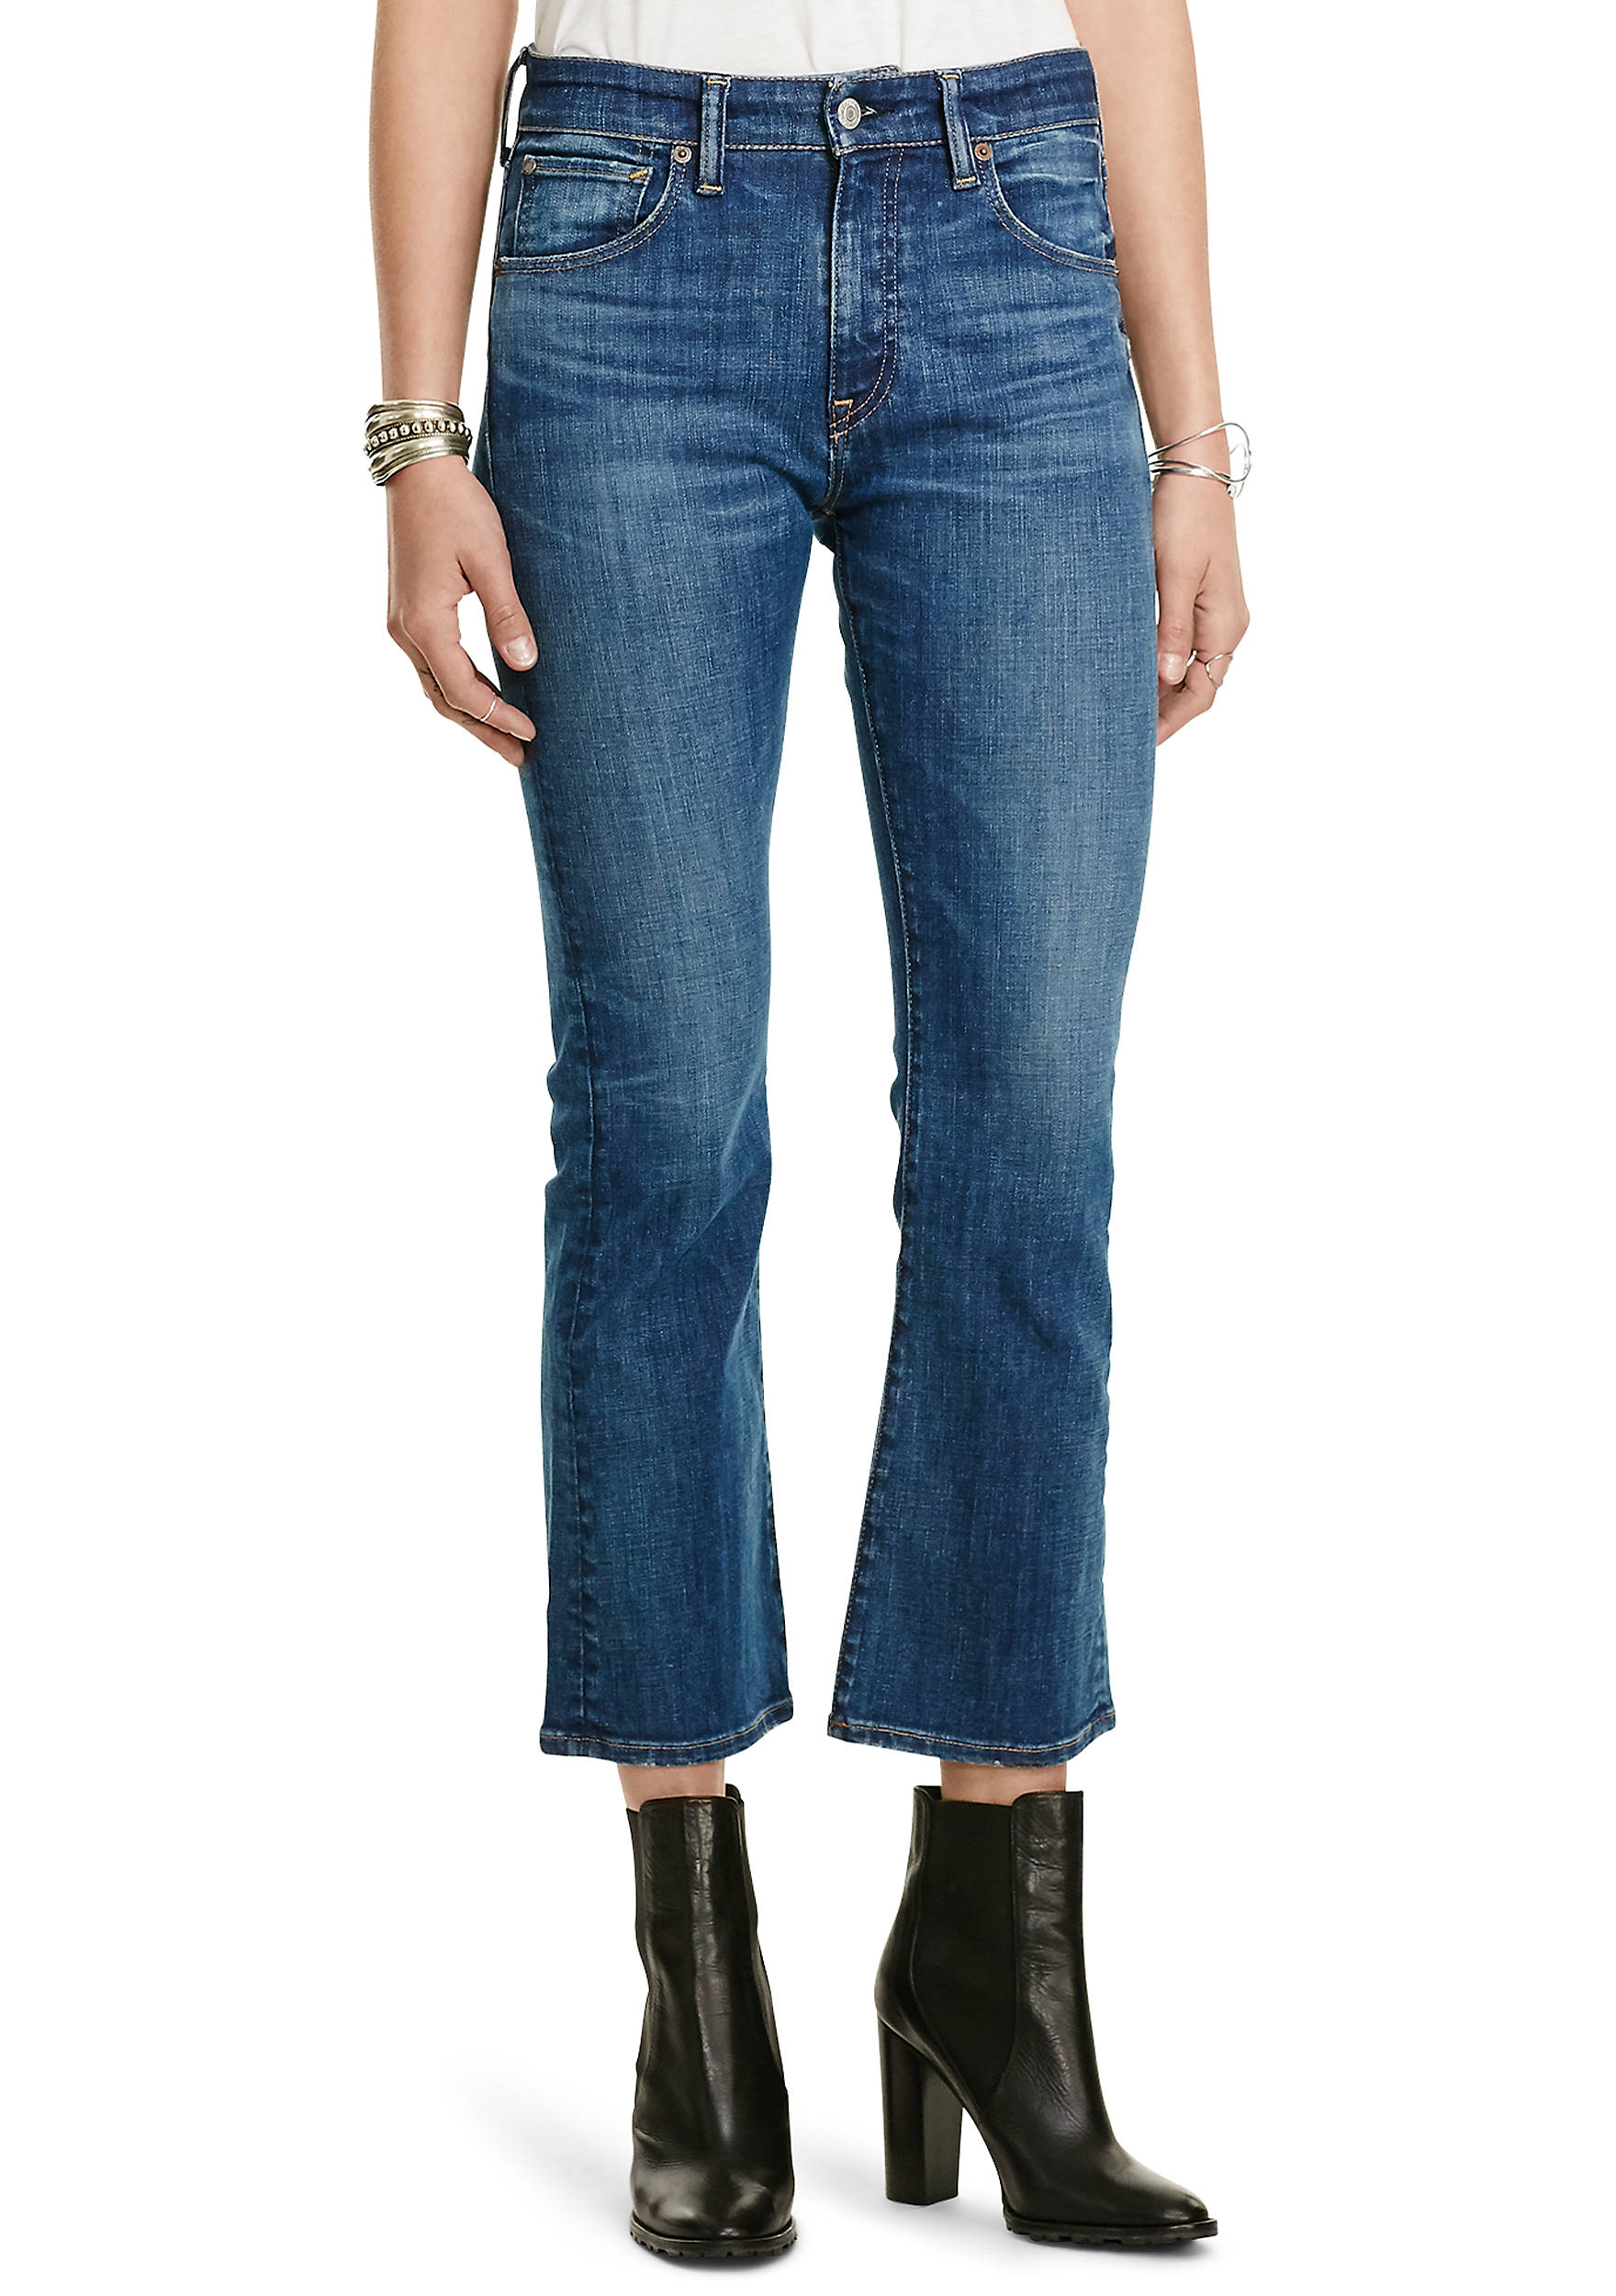 Denim & Supply Ralph Lauren Kenmore Cropped Flared Jeans.  1803974288625601001. Images